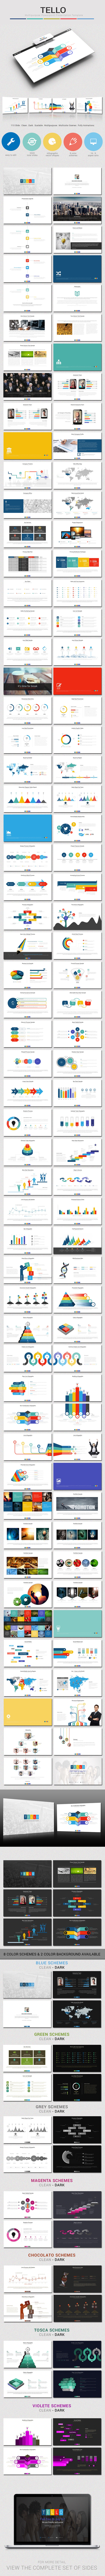 Tello Powerpoint Template - Business PowerPoint Templates